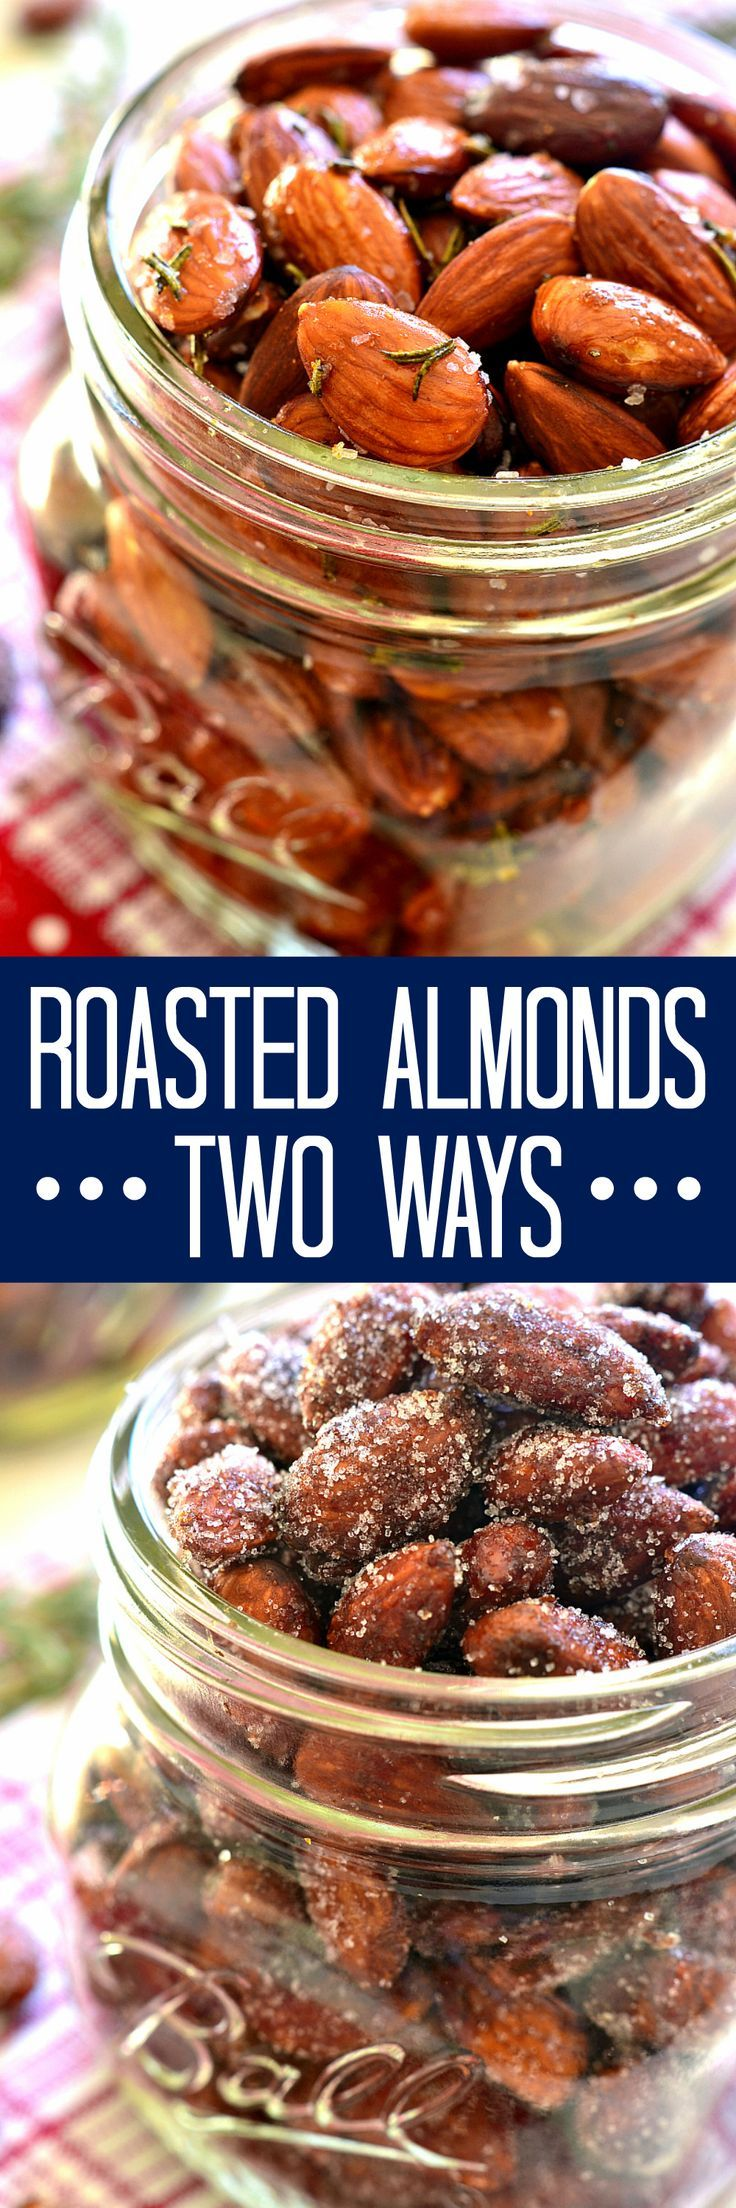 Cinnamon Honey Roasted Almonds & Rosemary Olive Oil Roasted Almonds - one savory, one sweet, both equally delicious and perfect for holiday gifting!: